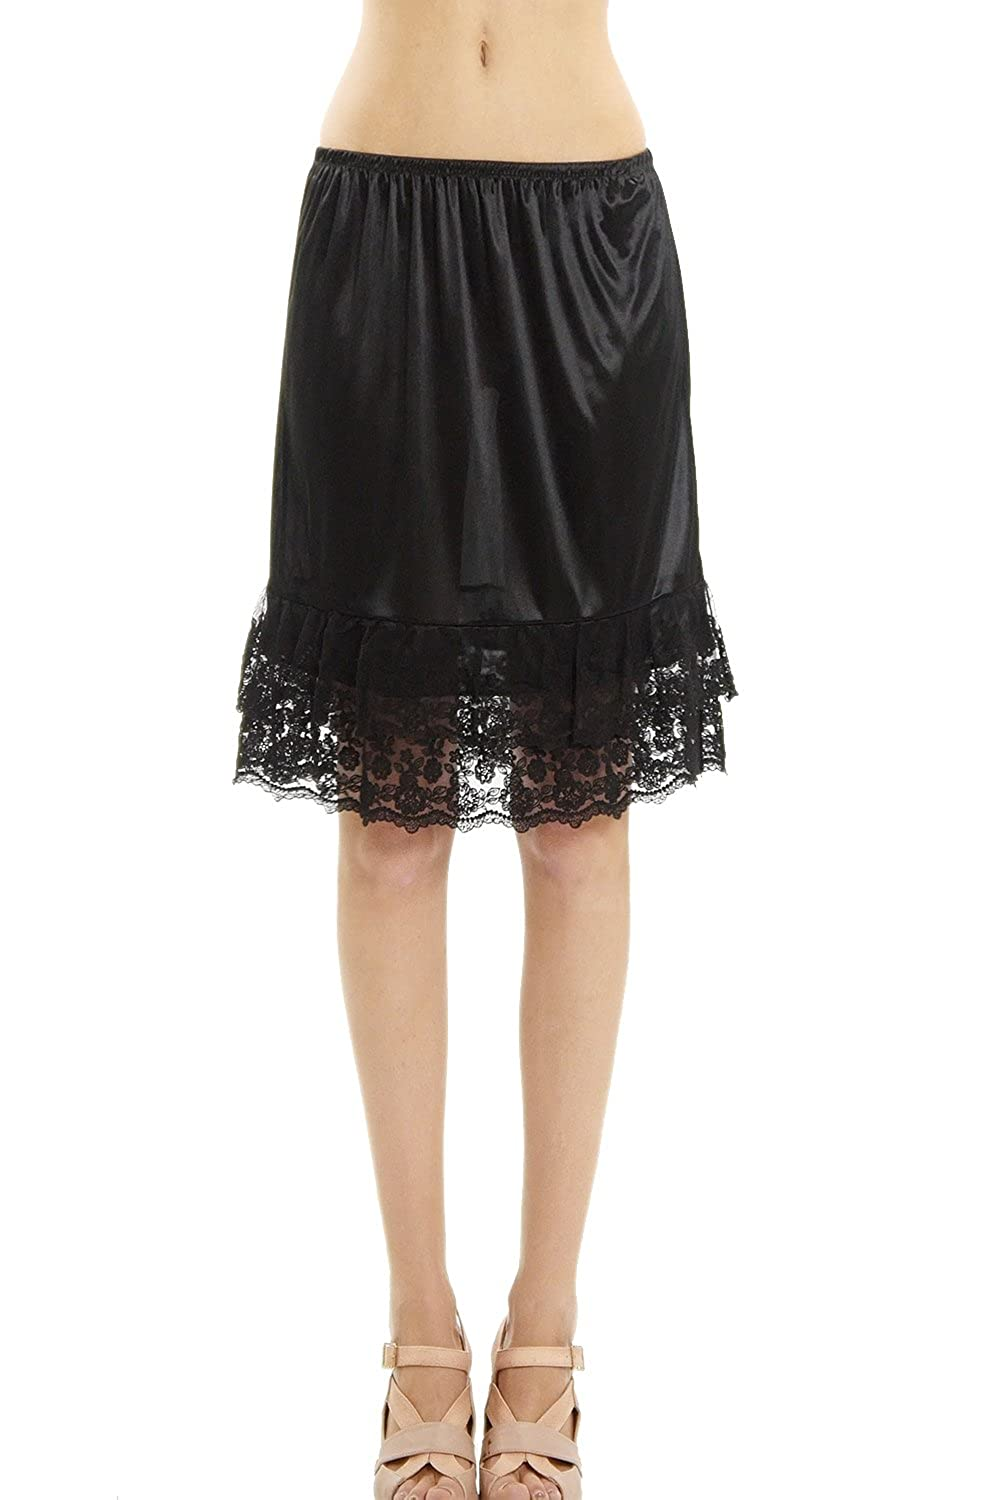 f84aed467d3f Double Lace Half Slip Satin Skirt Extender- 21